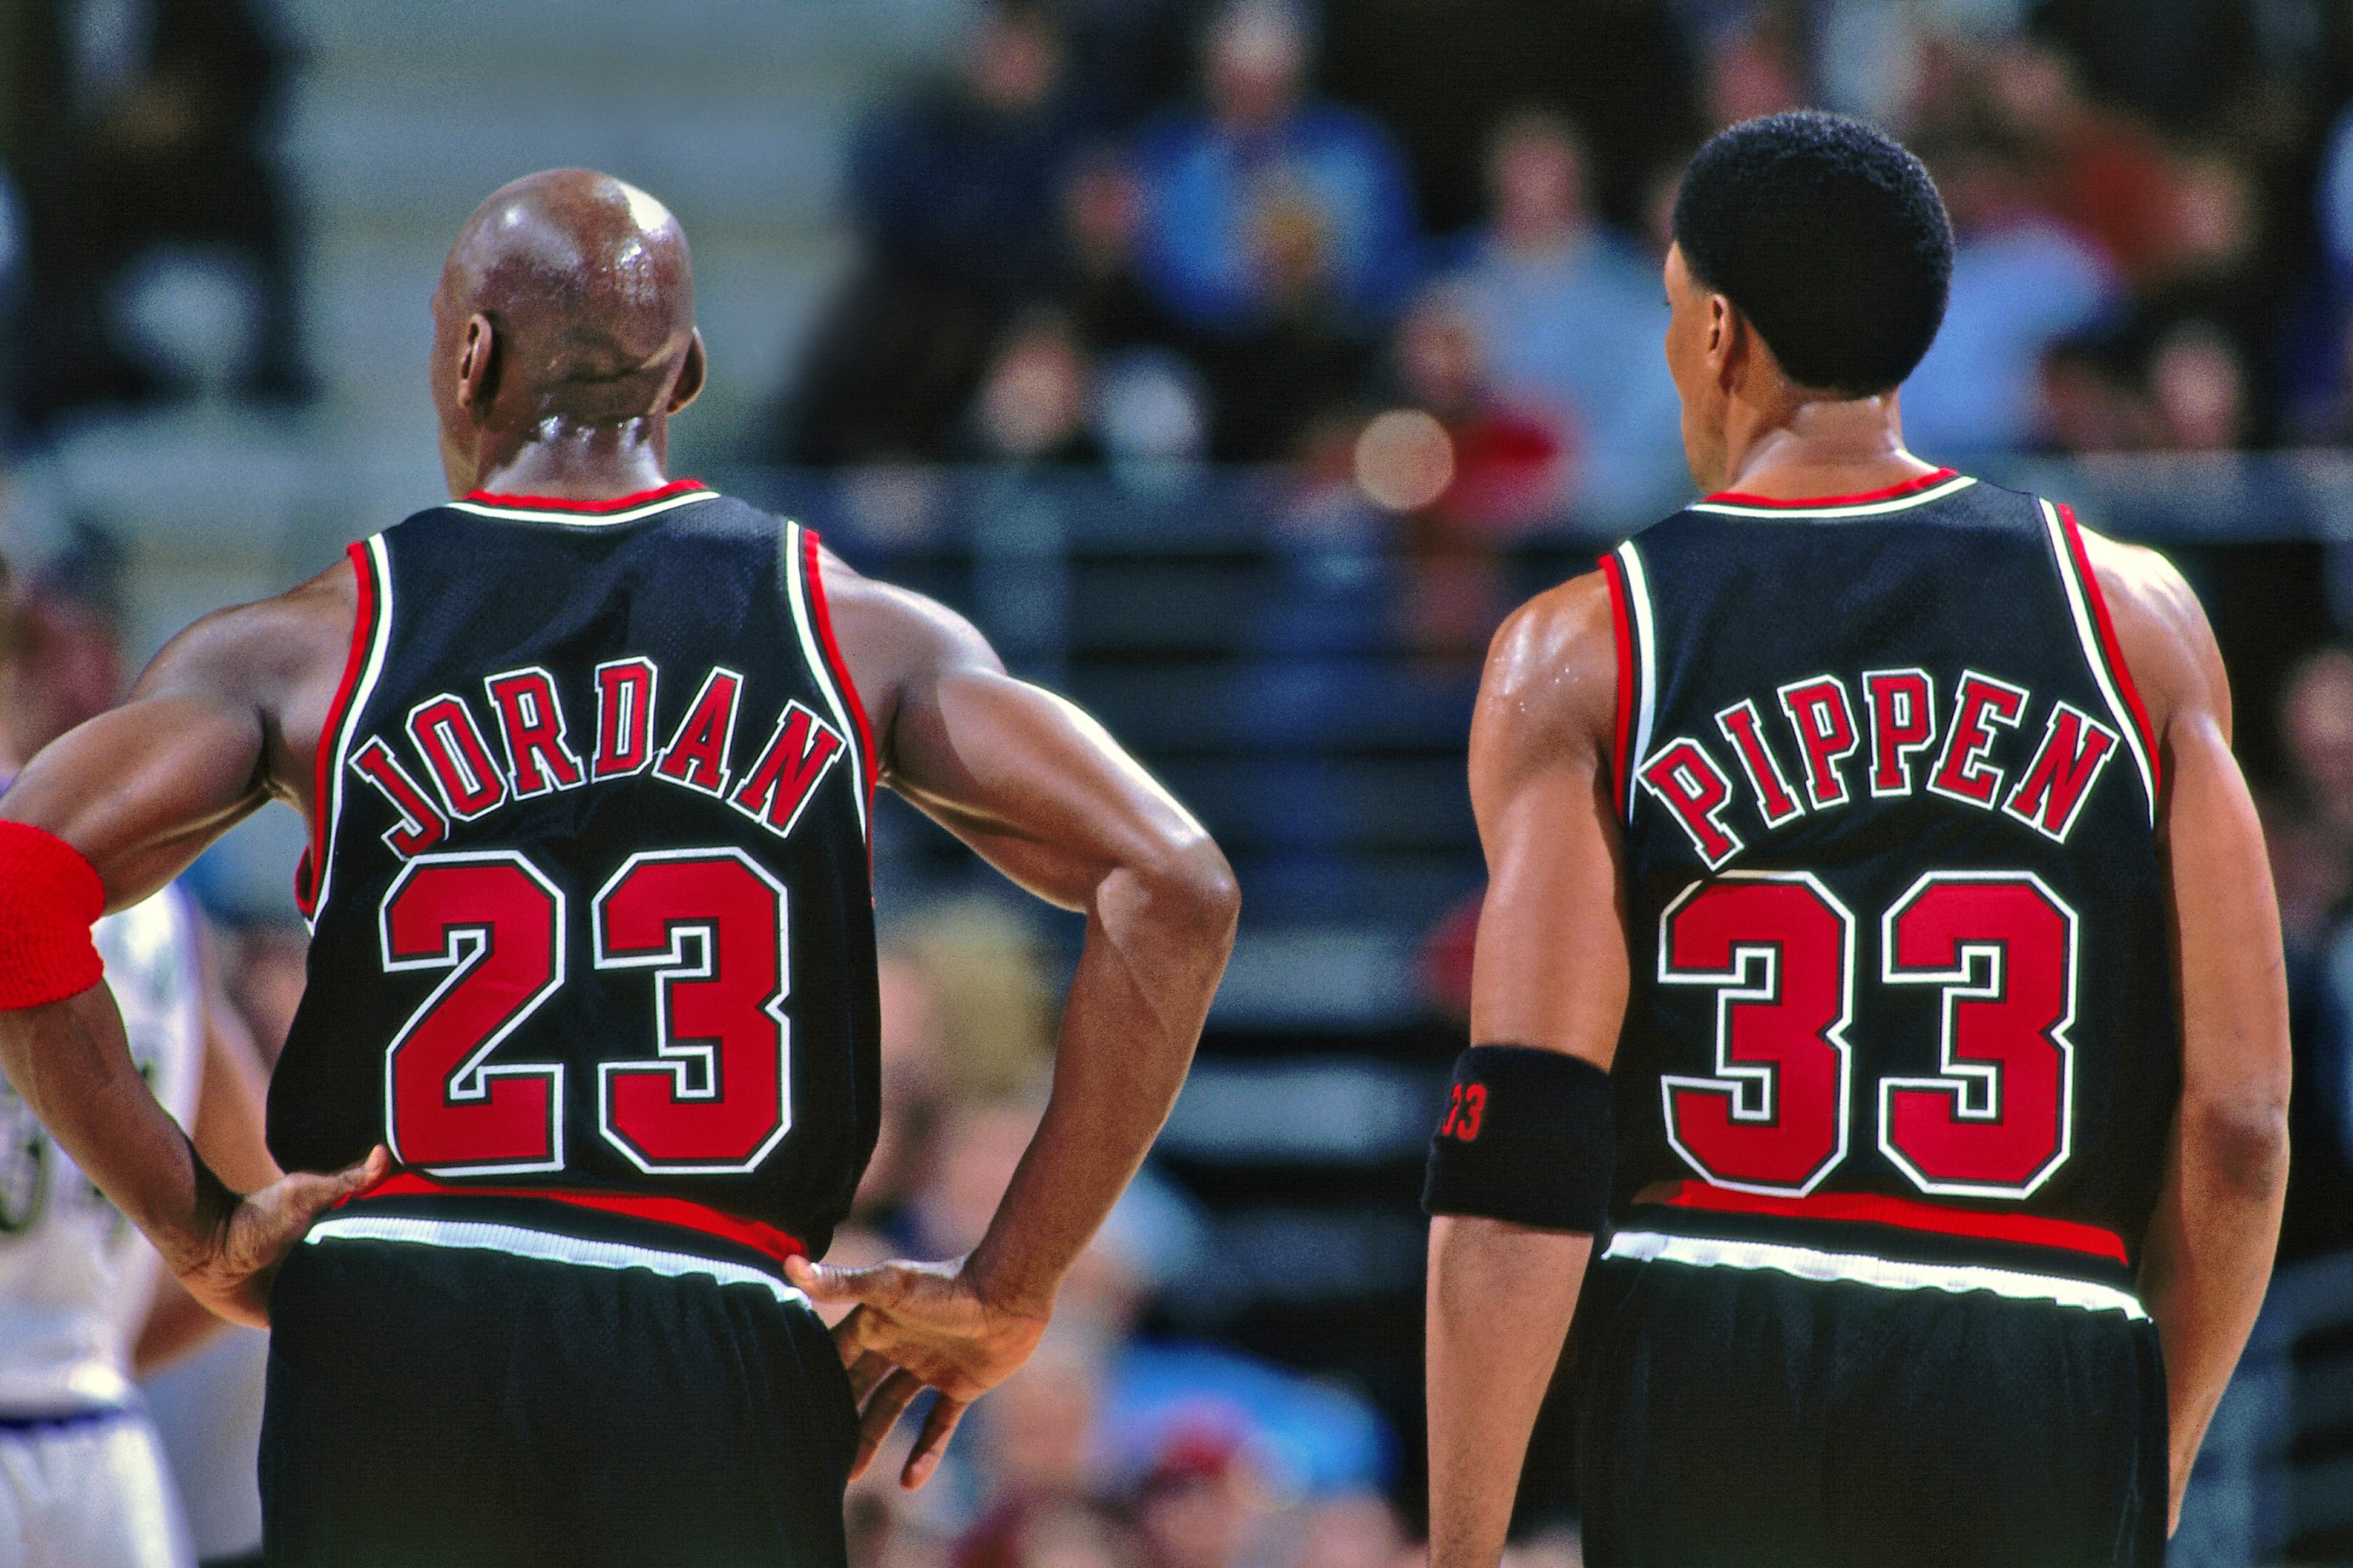 Jordan and Pippen Wallpaper 2